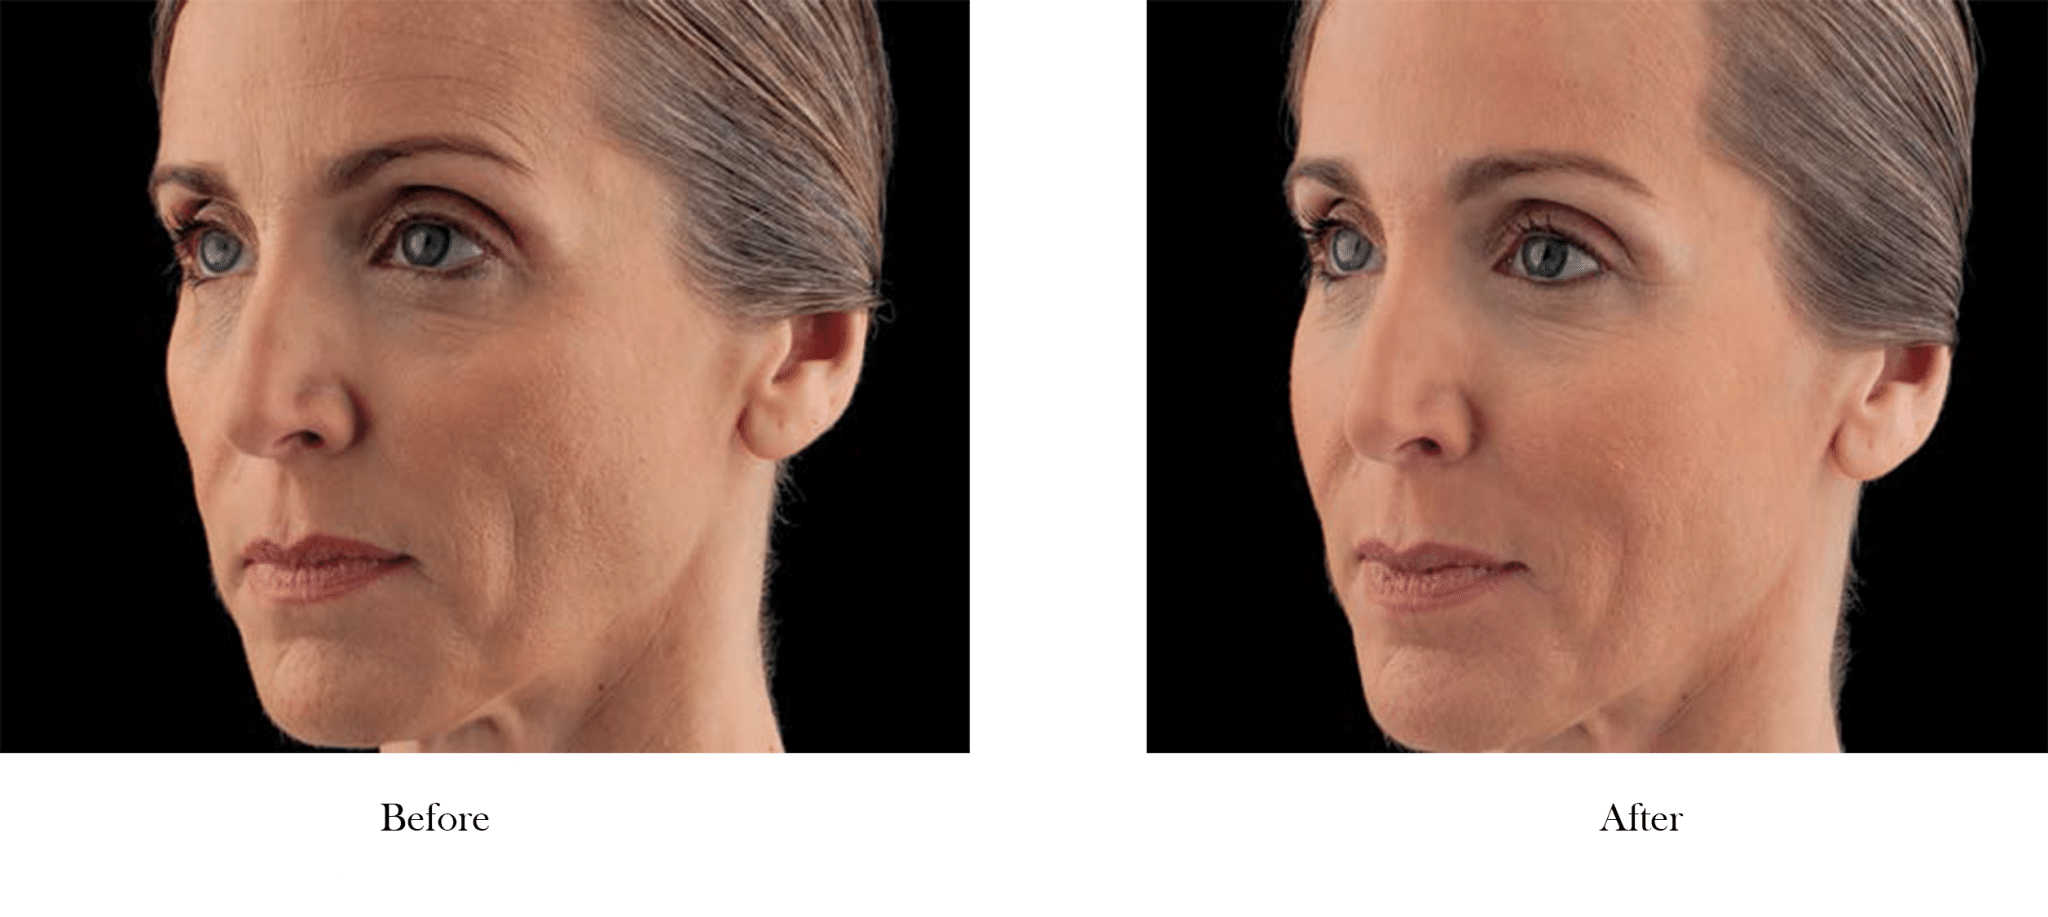 Before and After Filler Results